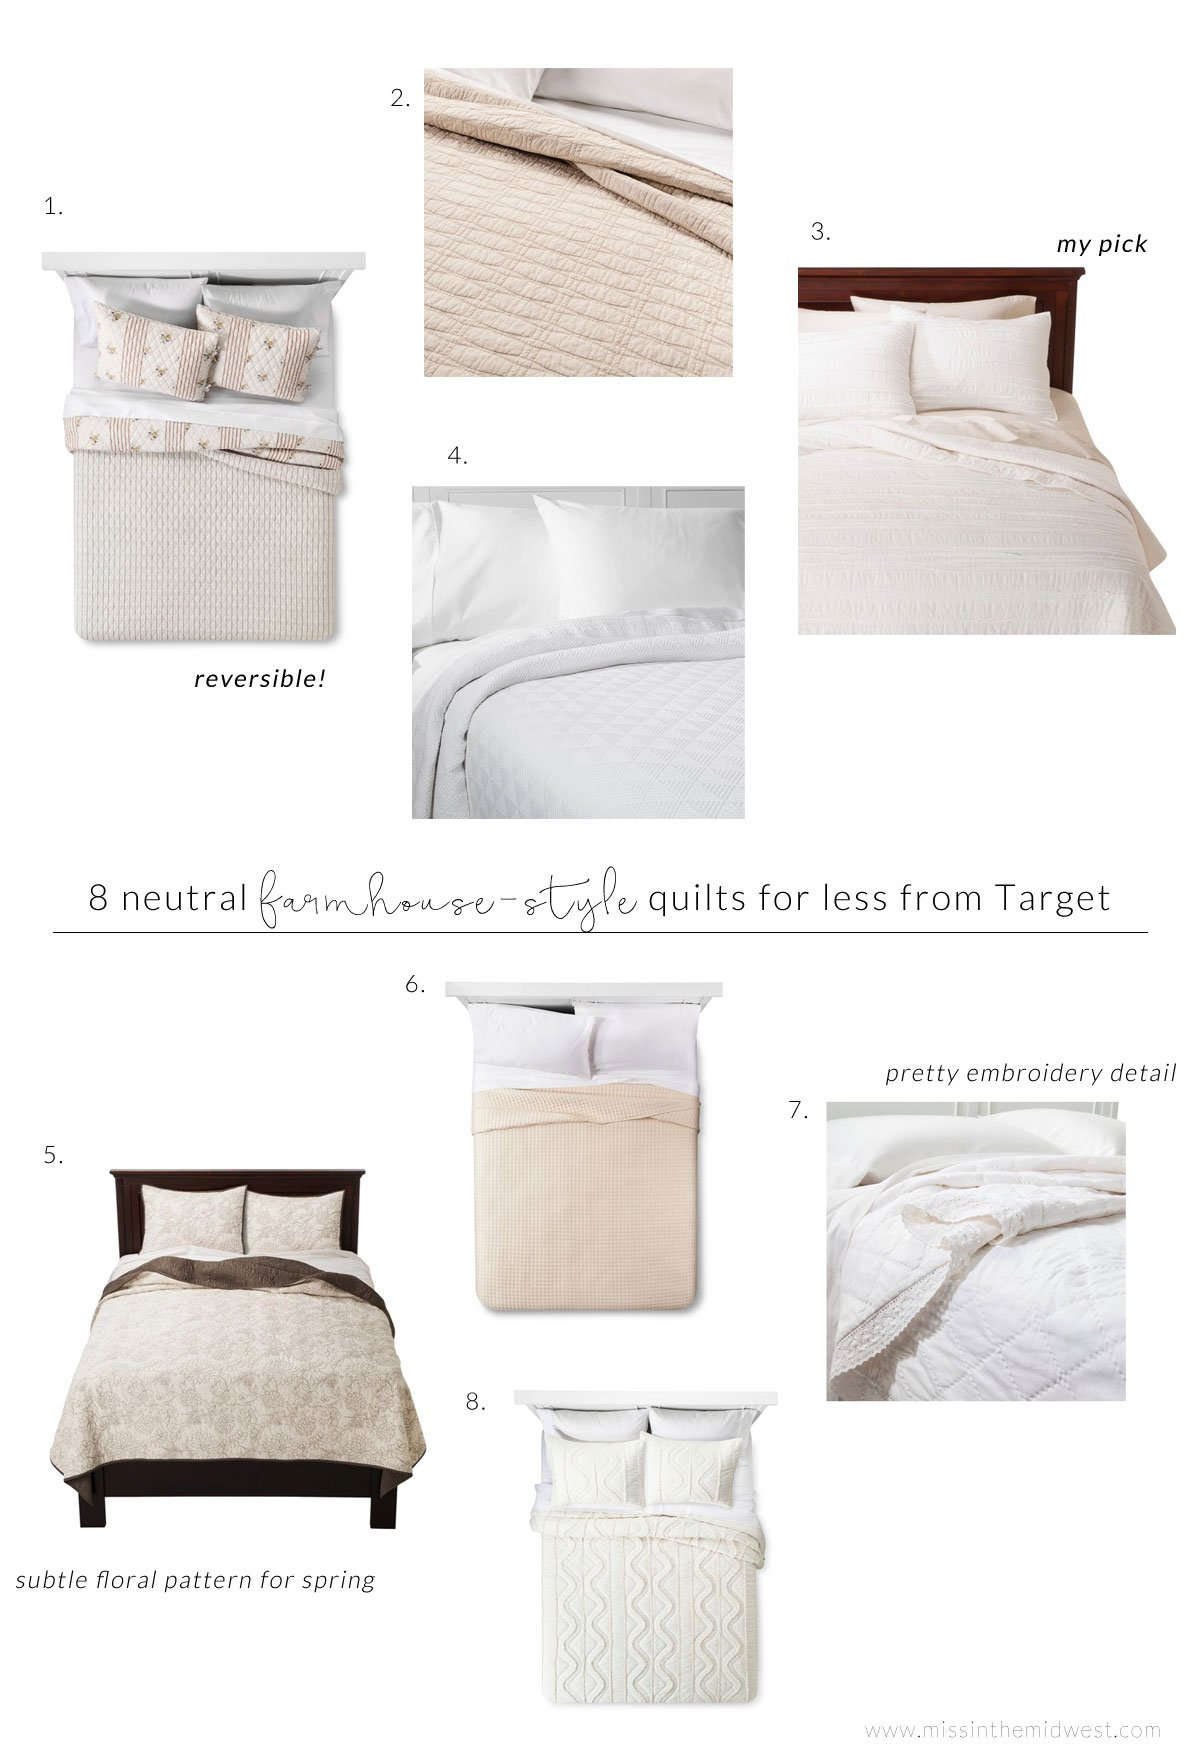 8 Neutral Farmhouse-Style Quilts for Less from Target details